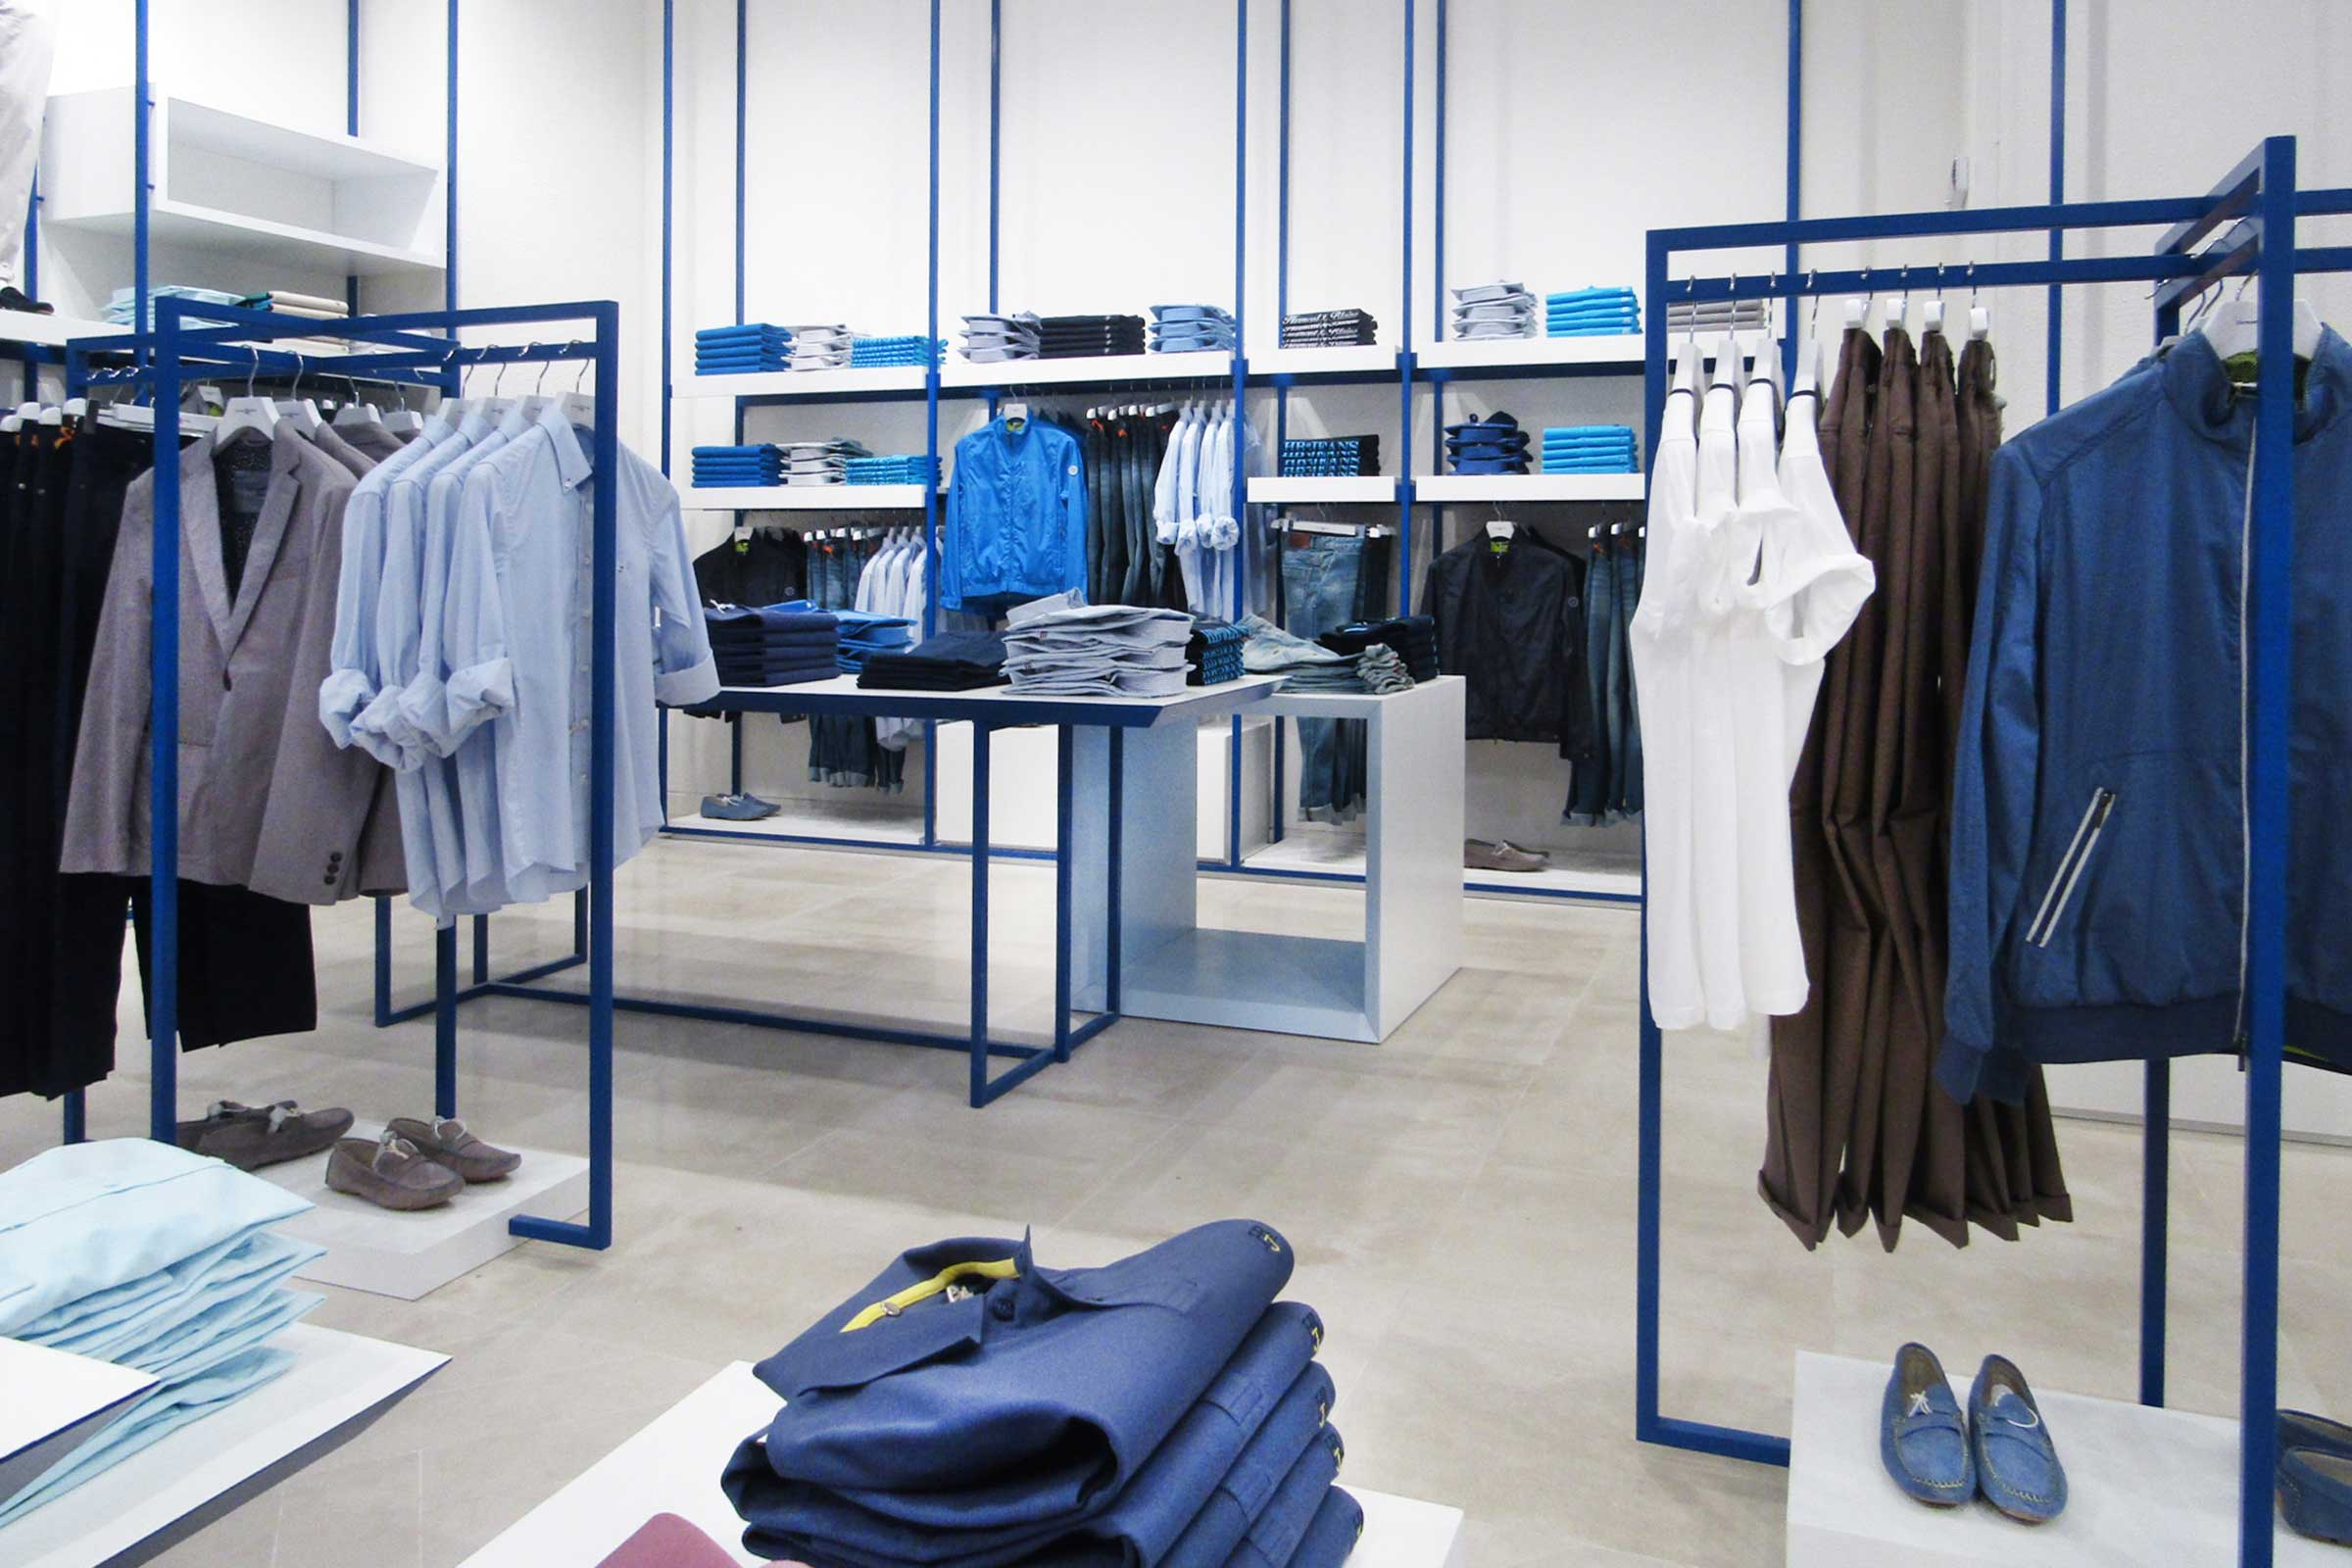 01_hb_outlet_arese_2400x1600